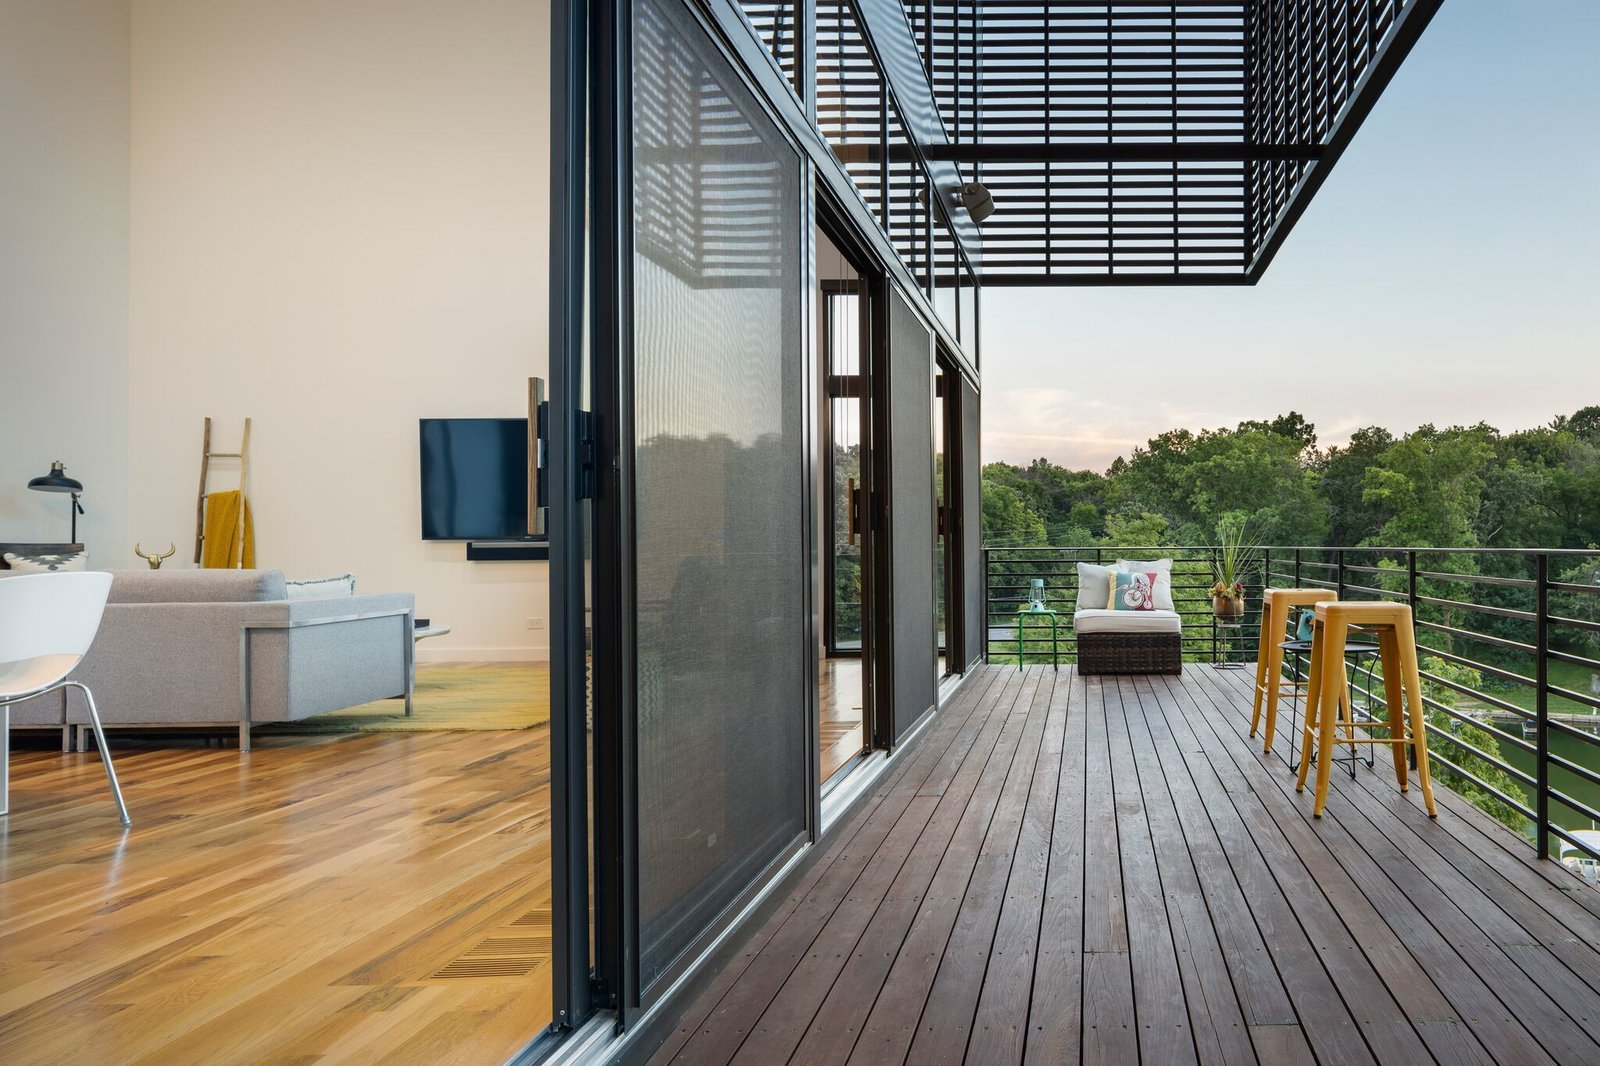 Living space opens to the deck